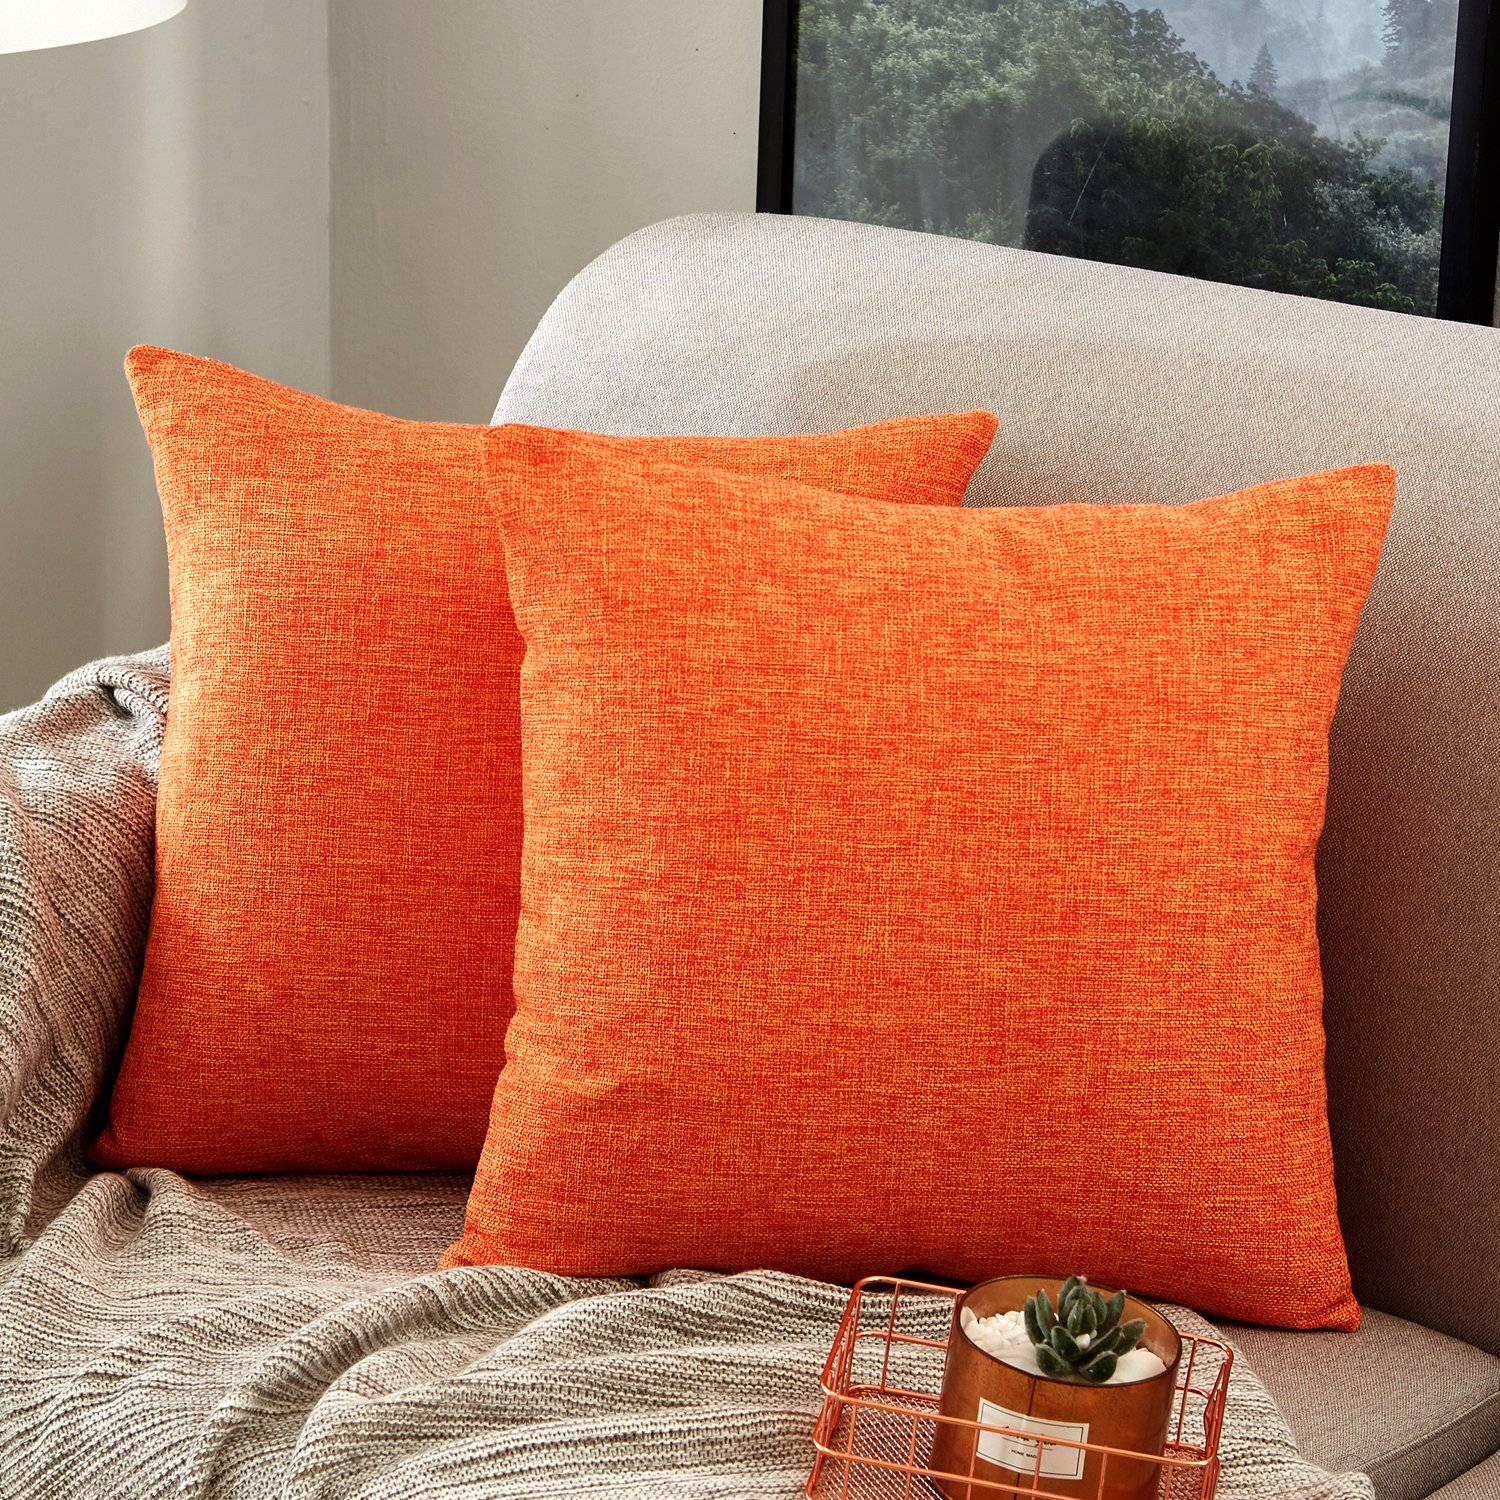 MERNETTE Pack of 2, Pure Square Decorative Throw Pillows Cushion Covers Cases Pillowcases Durable Cotton Linen Blend for Sofa Bedroom Car Chair 18 X 18 inches 45 x 45 cm(18''x18'',2 Pieces, Orange)